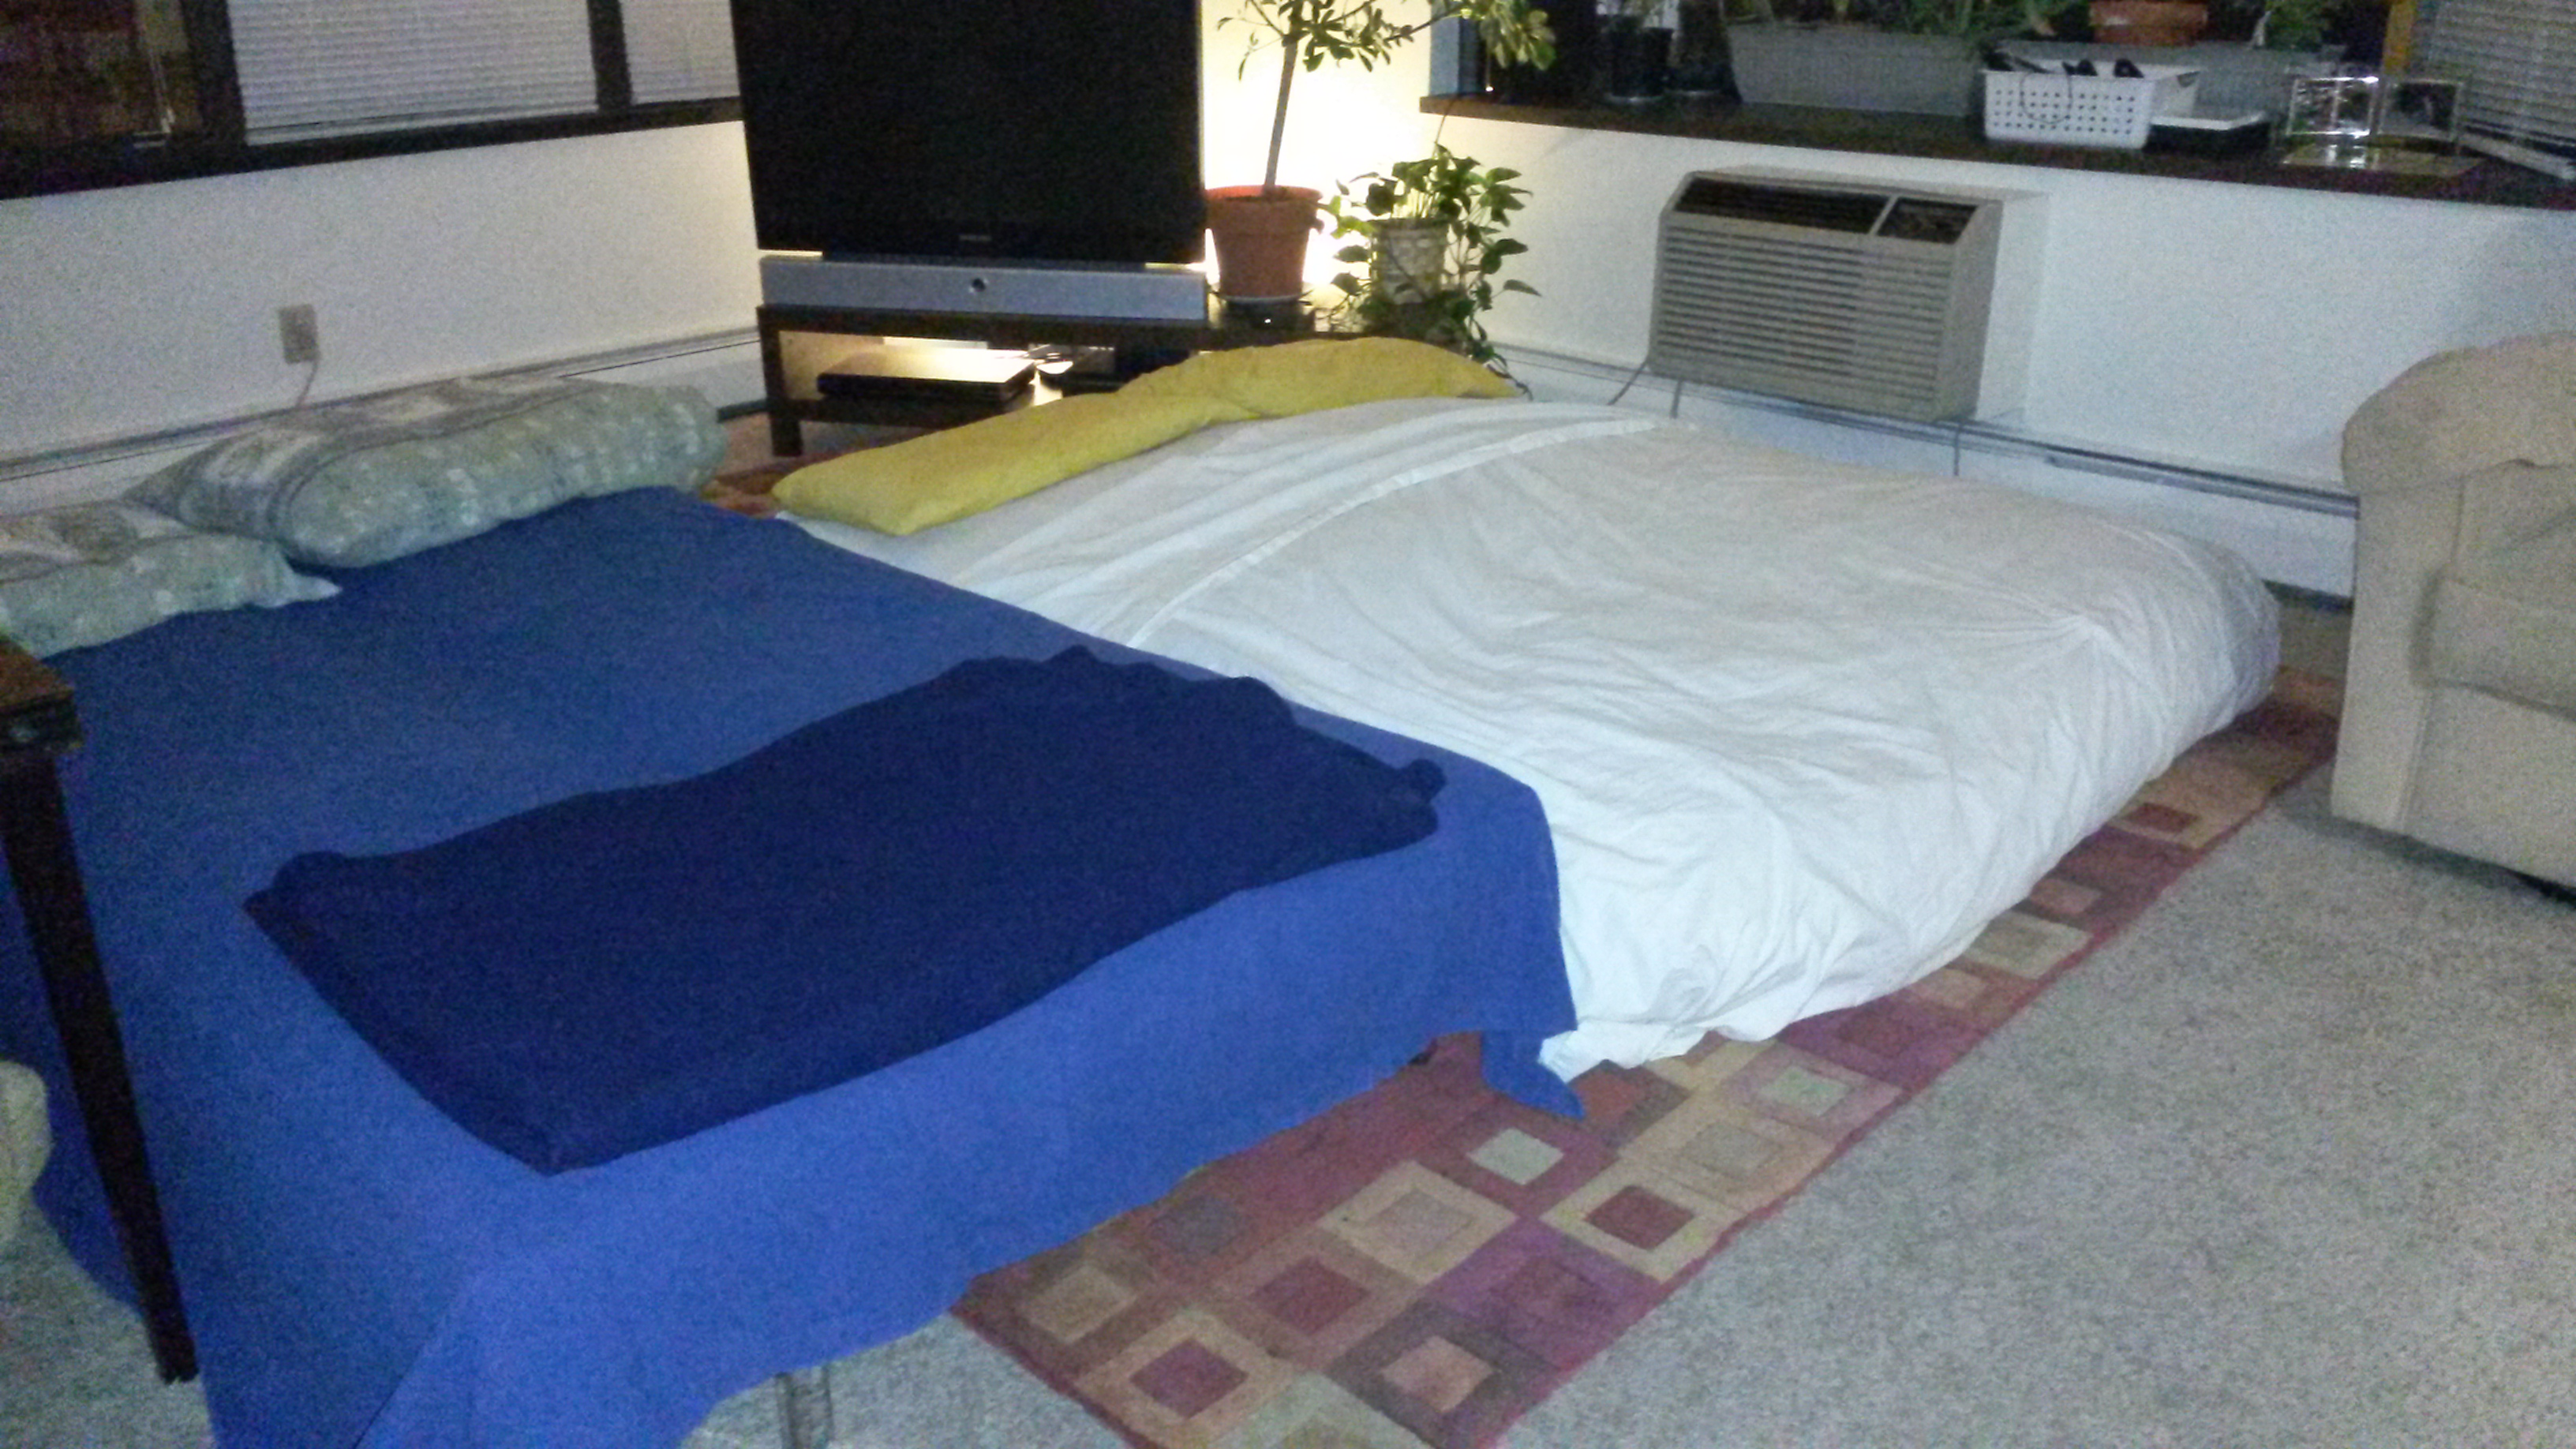 youtube comfortably comforter watch bed minimalist to sleep on how the setup we floor